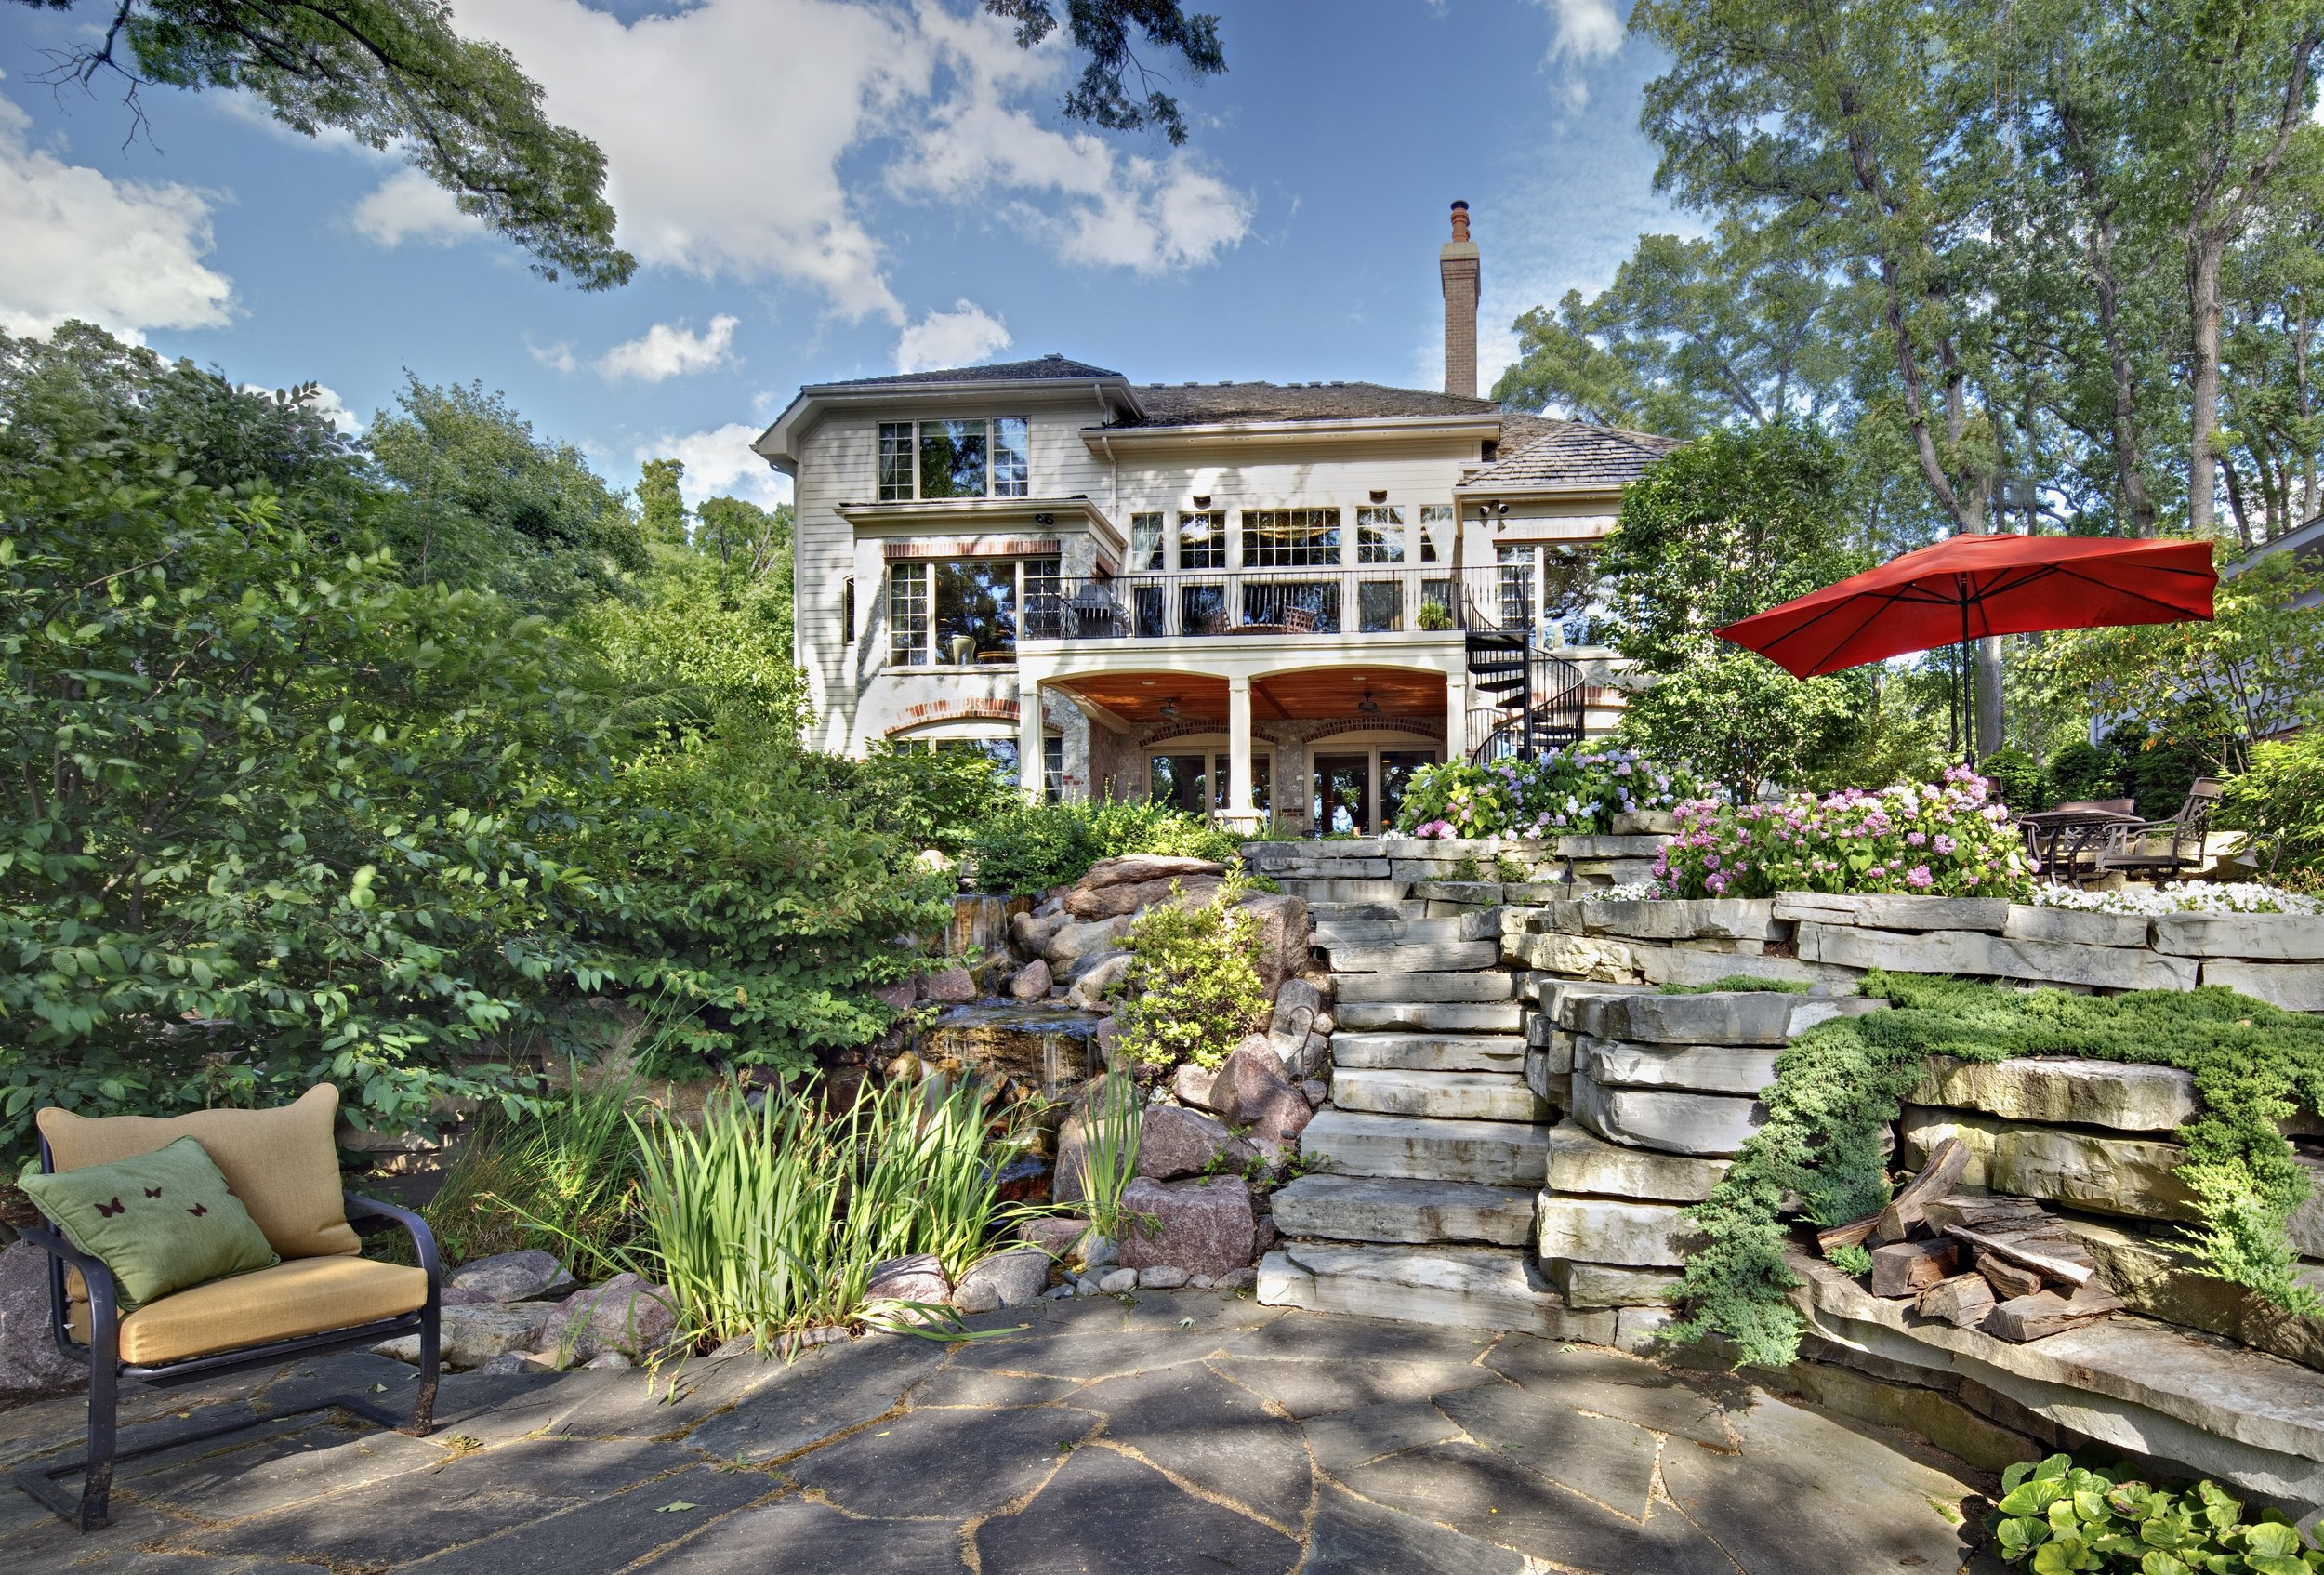 Custom Home by Southampton with River Views and Extensive Bluestone Landscaping with Multilevel Ponds